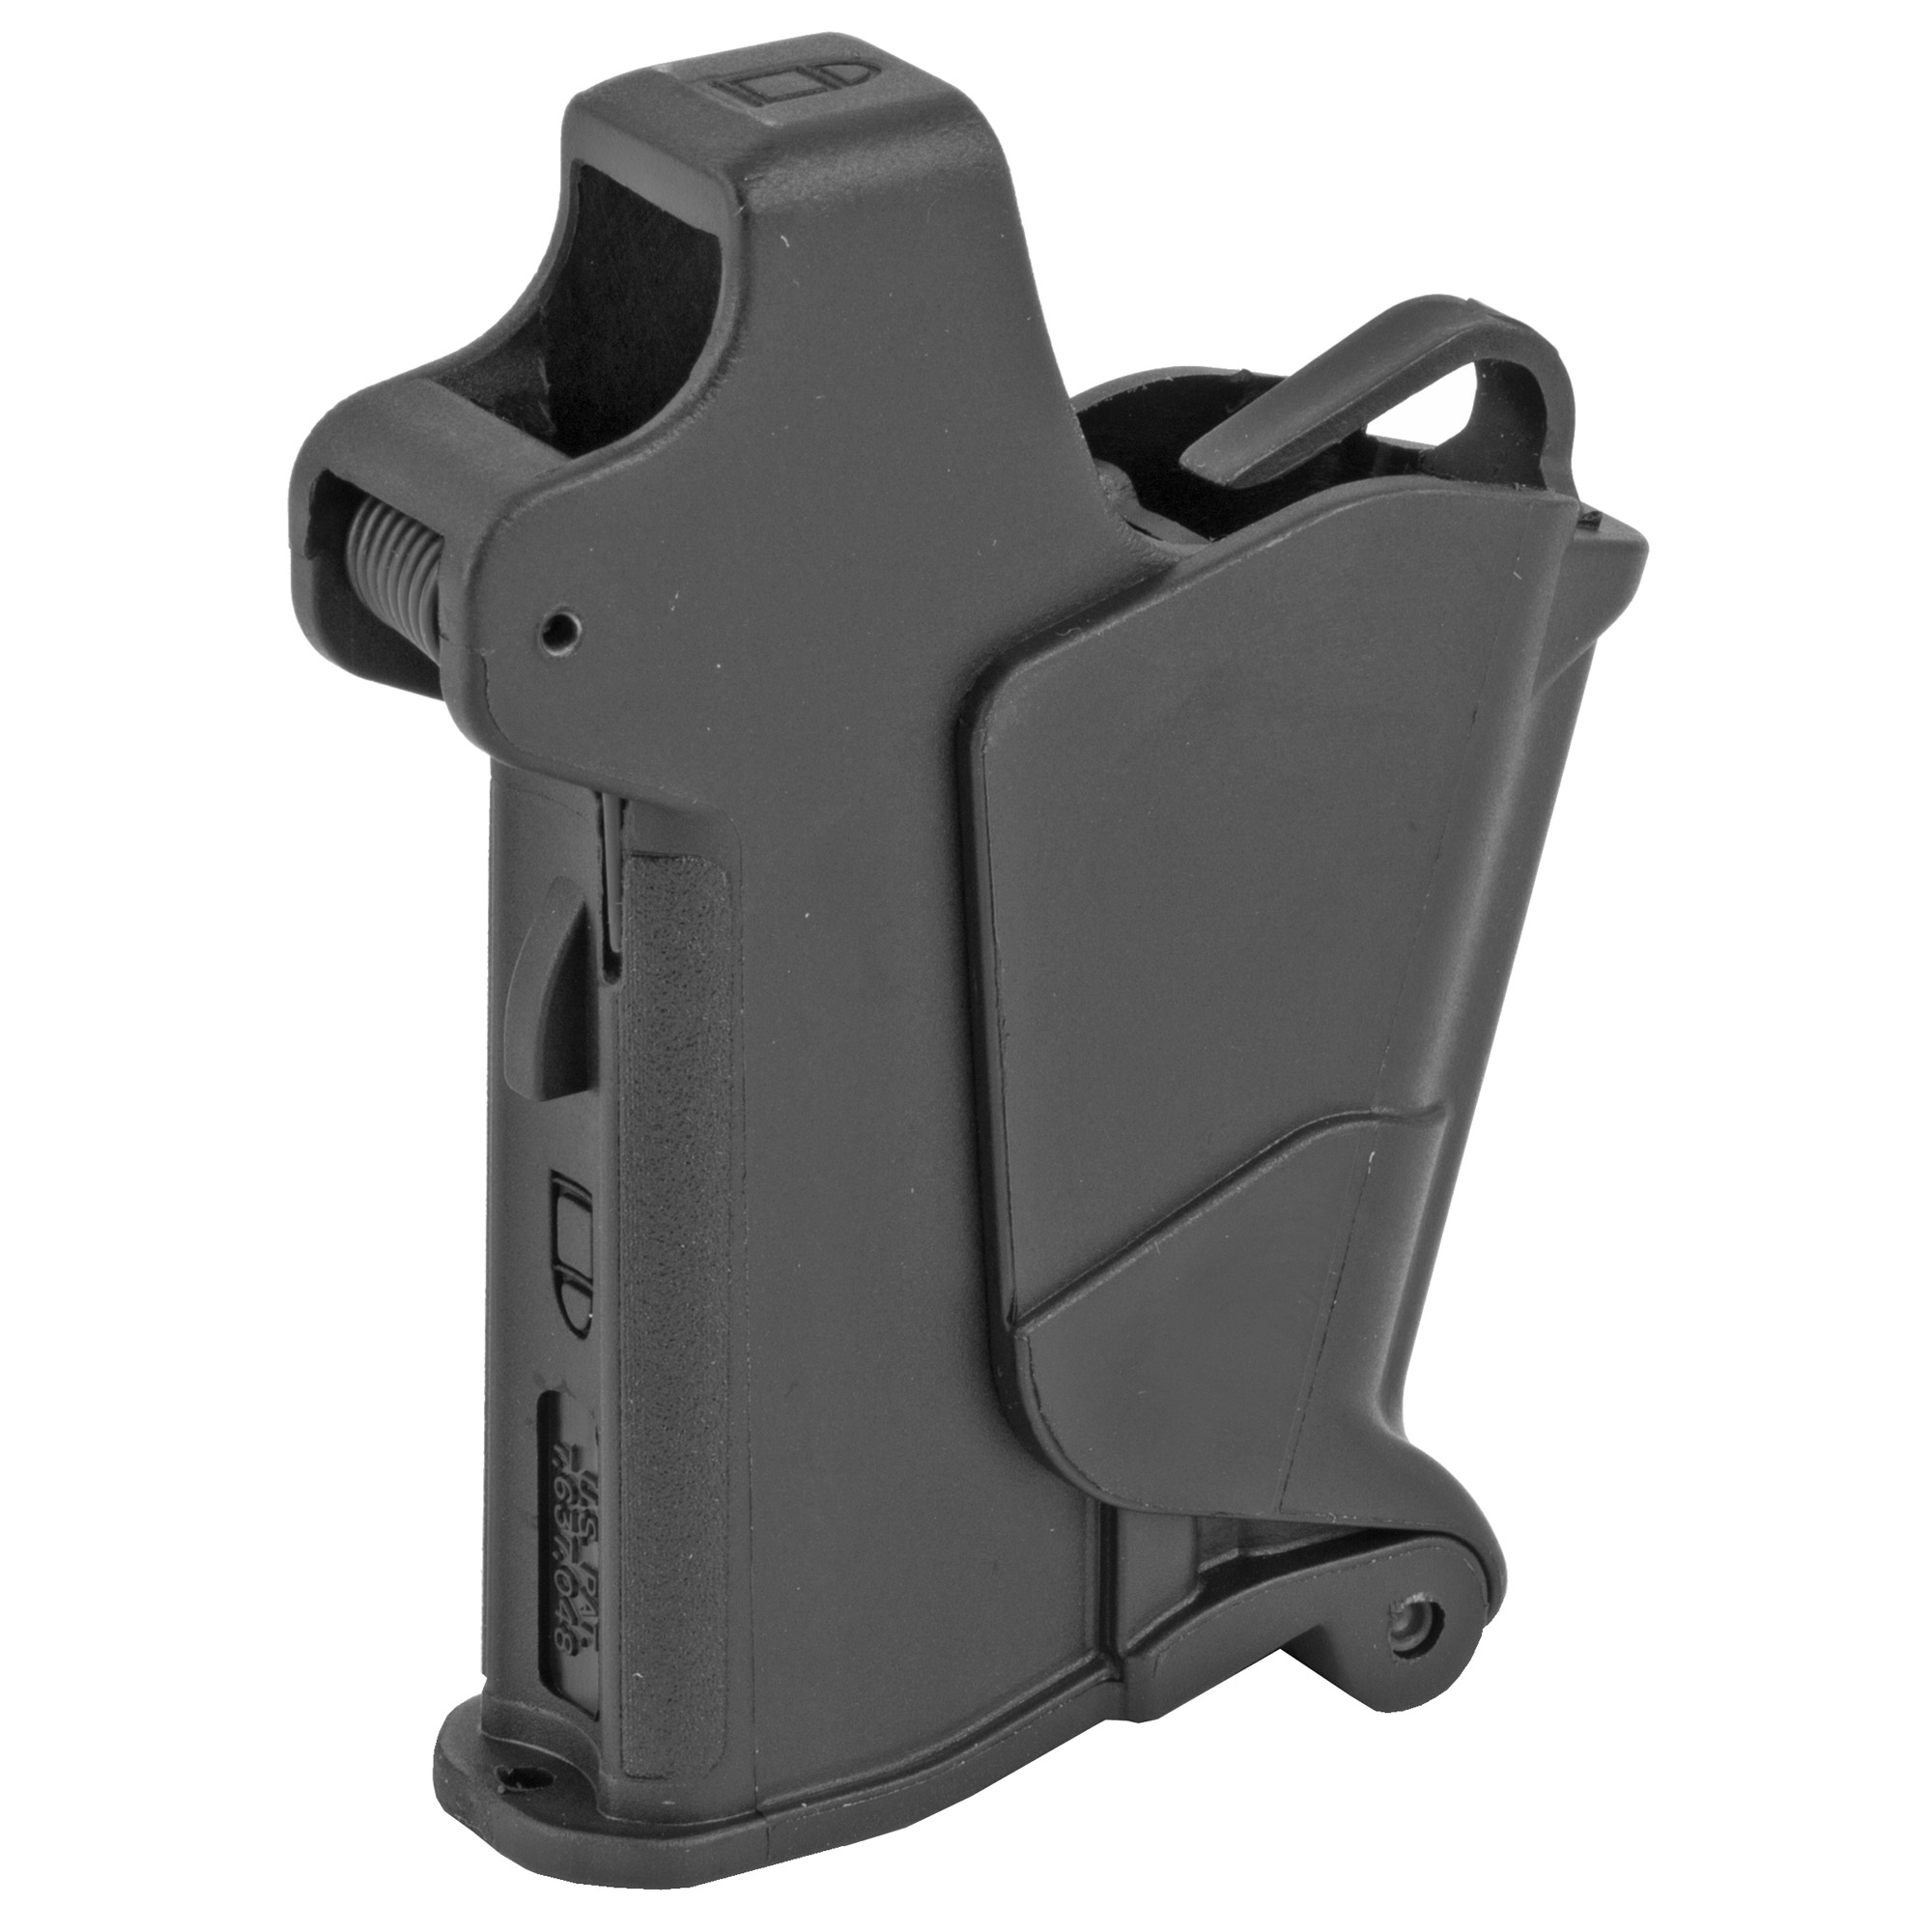 """Since 2001"""" Maglula has manufactured professional military-grade tools for loading and unloading magazines. These products save valuable time at the range"""" field"""" armory and prevent pain associated with loading and unloading magazines."""